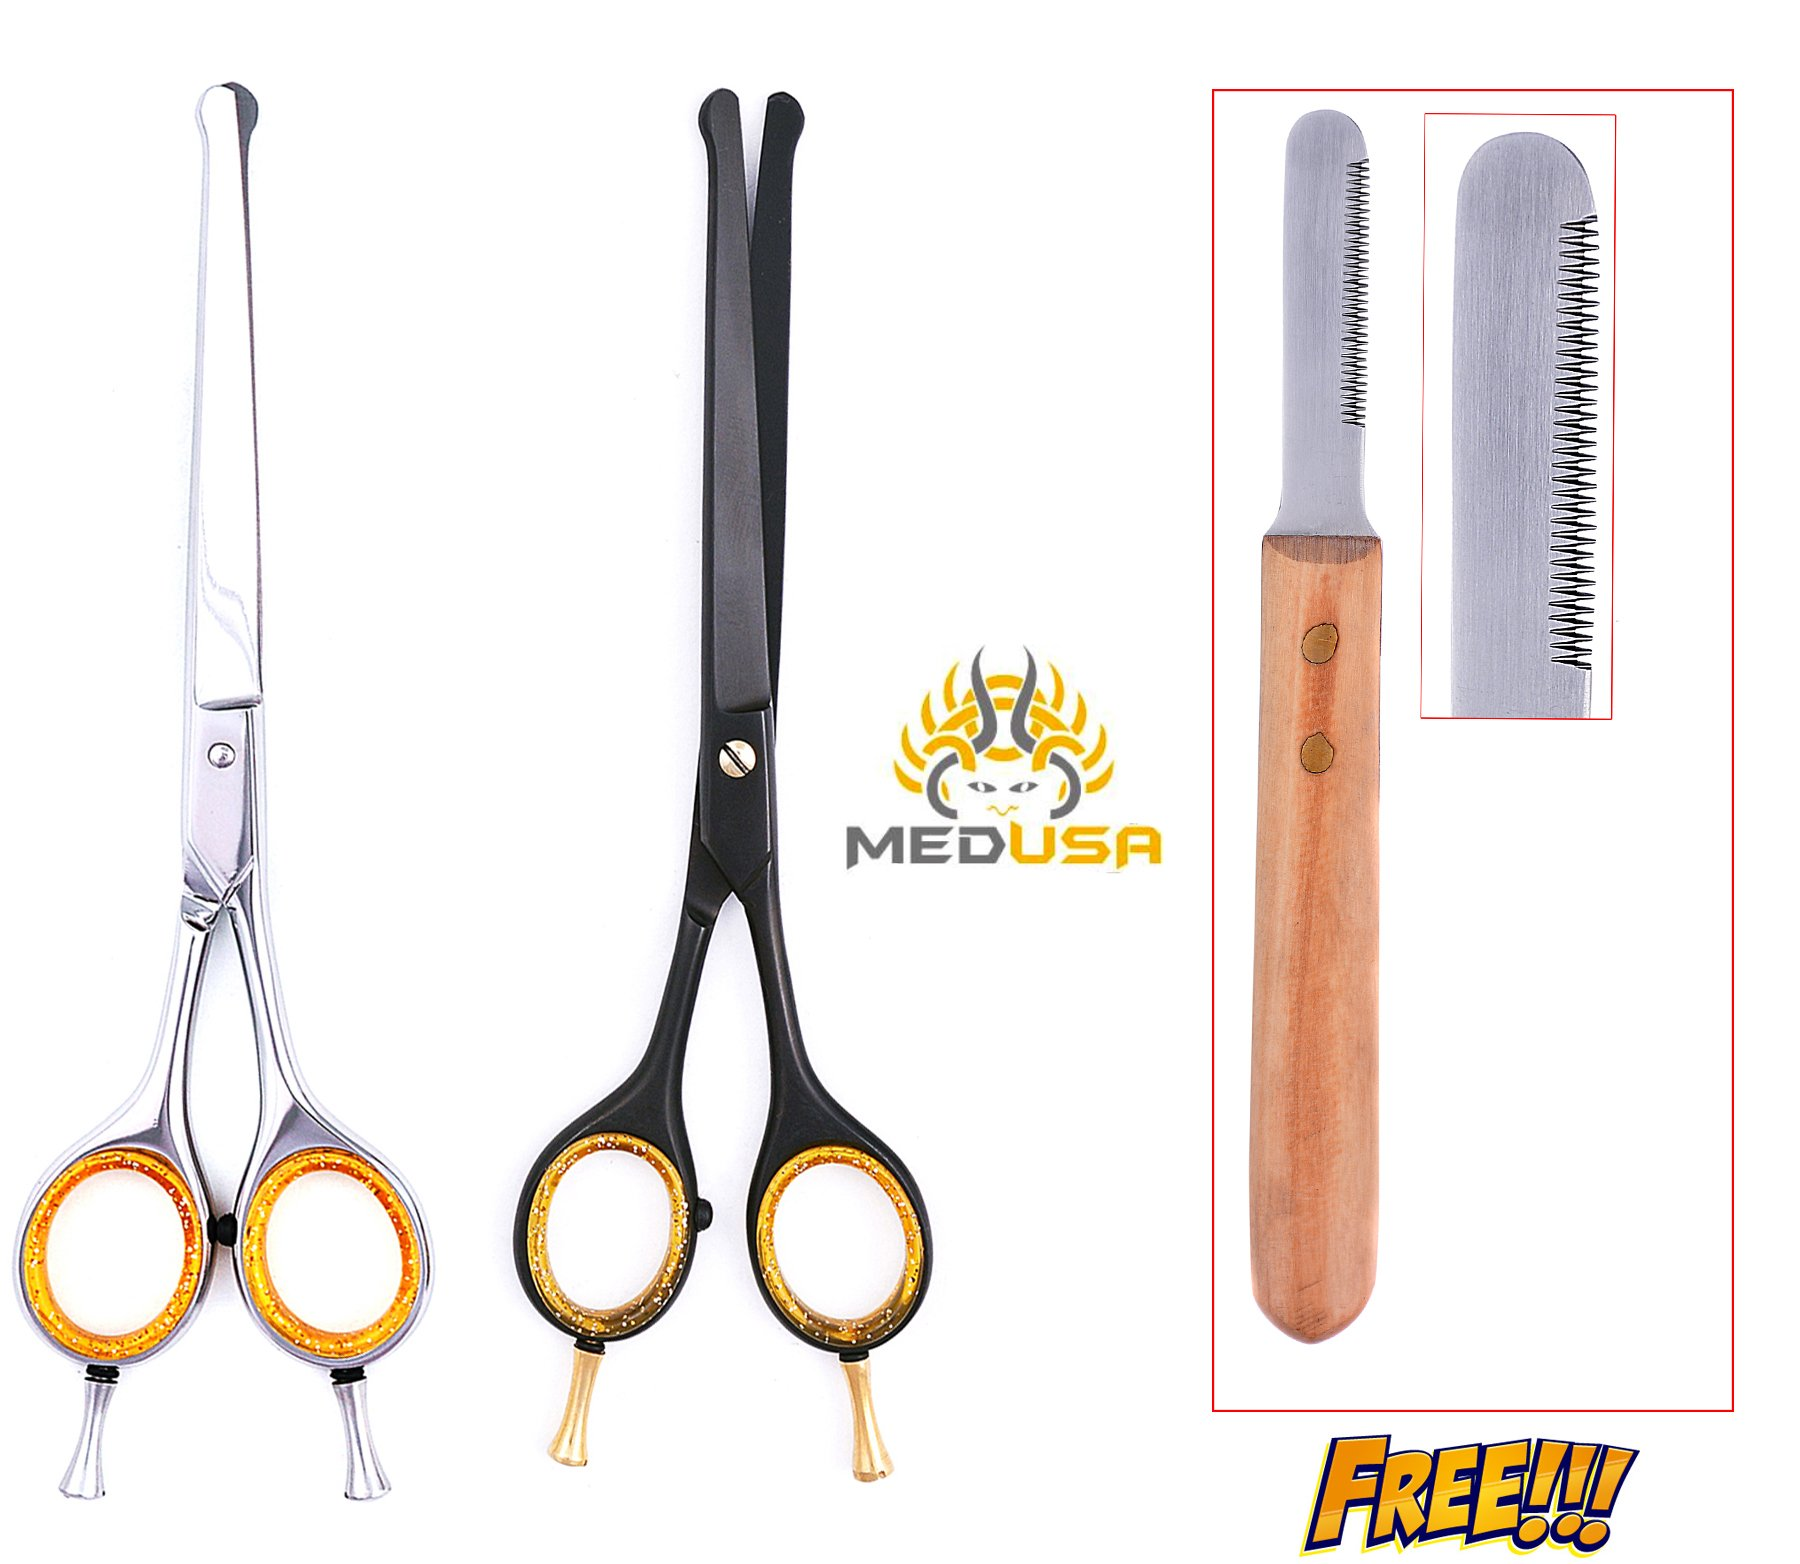 MedUSA Professional 7'' Ball Tipped Razor Edge Japanese Stainless Steel Pet Grooming Scissor Shear (Full Set) by MedUSA